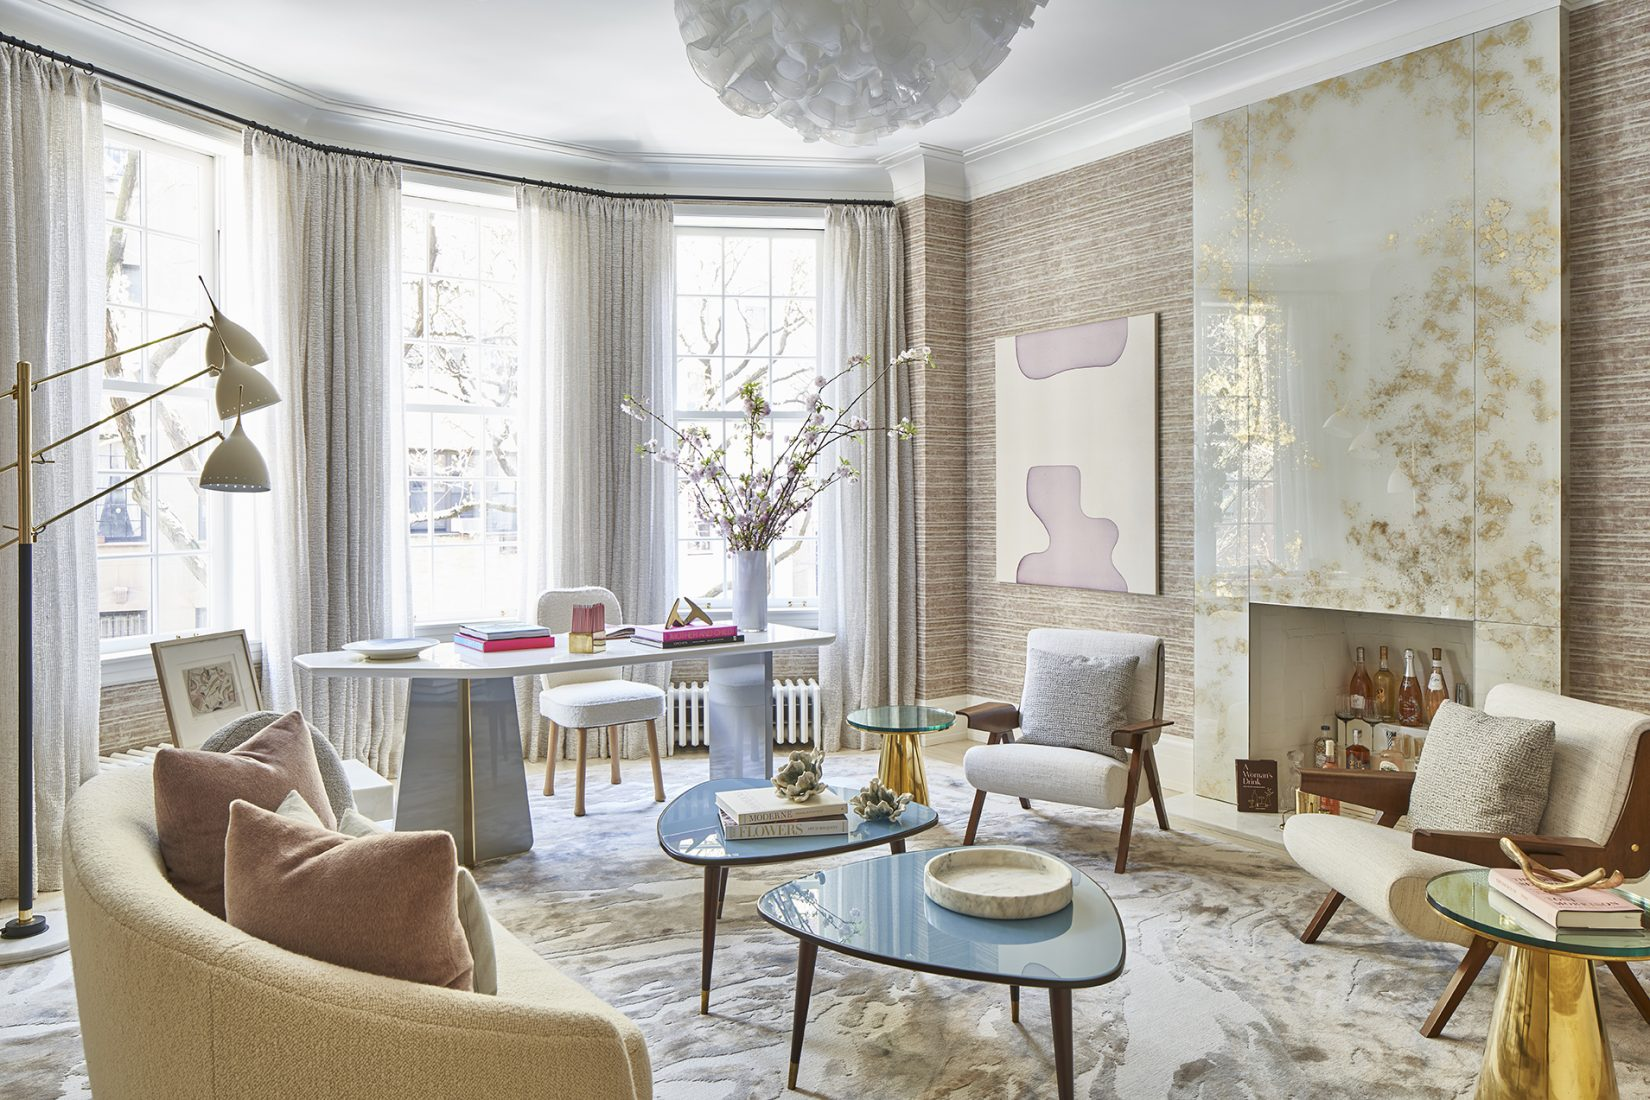 Eve Robinson Pays Homage to Virginia Woolf at the 47th Annual Kips Bay Show House